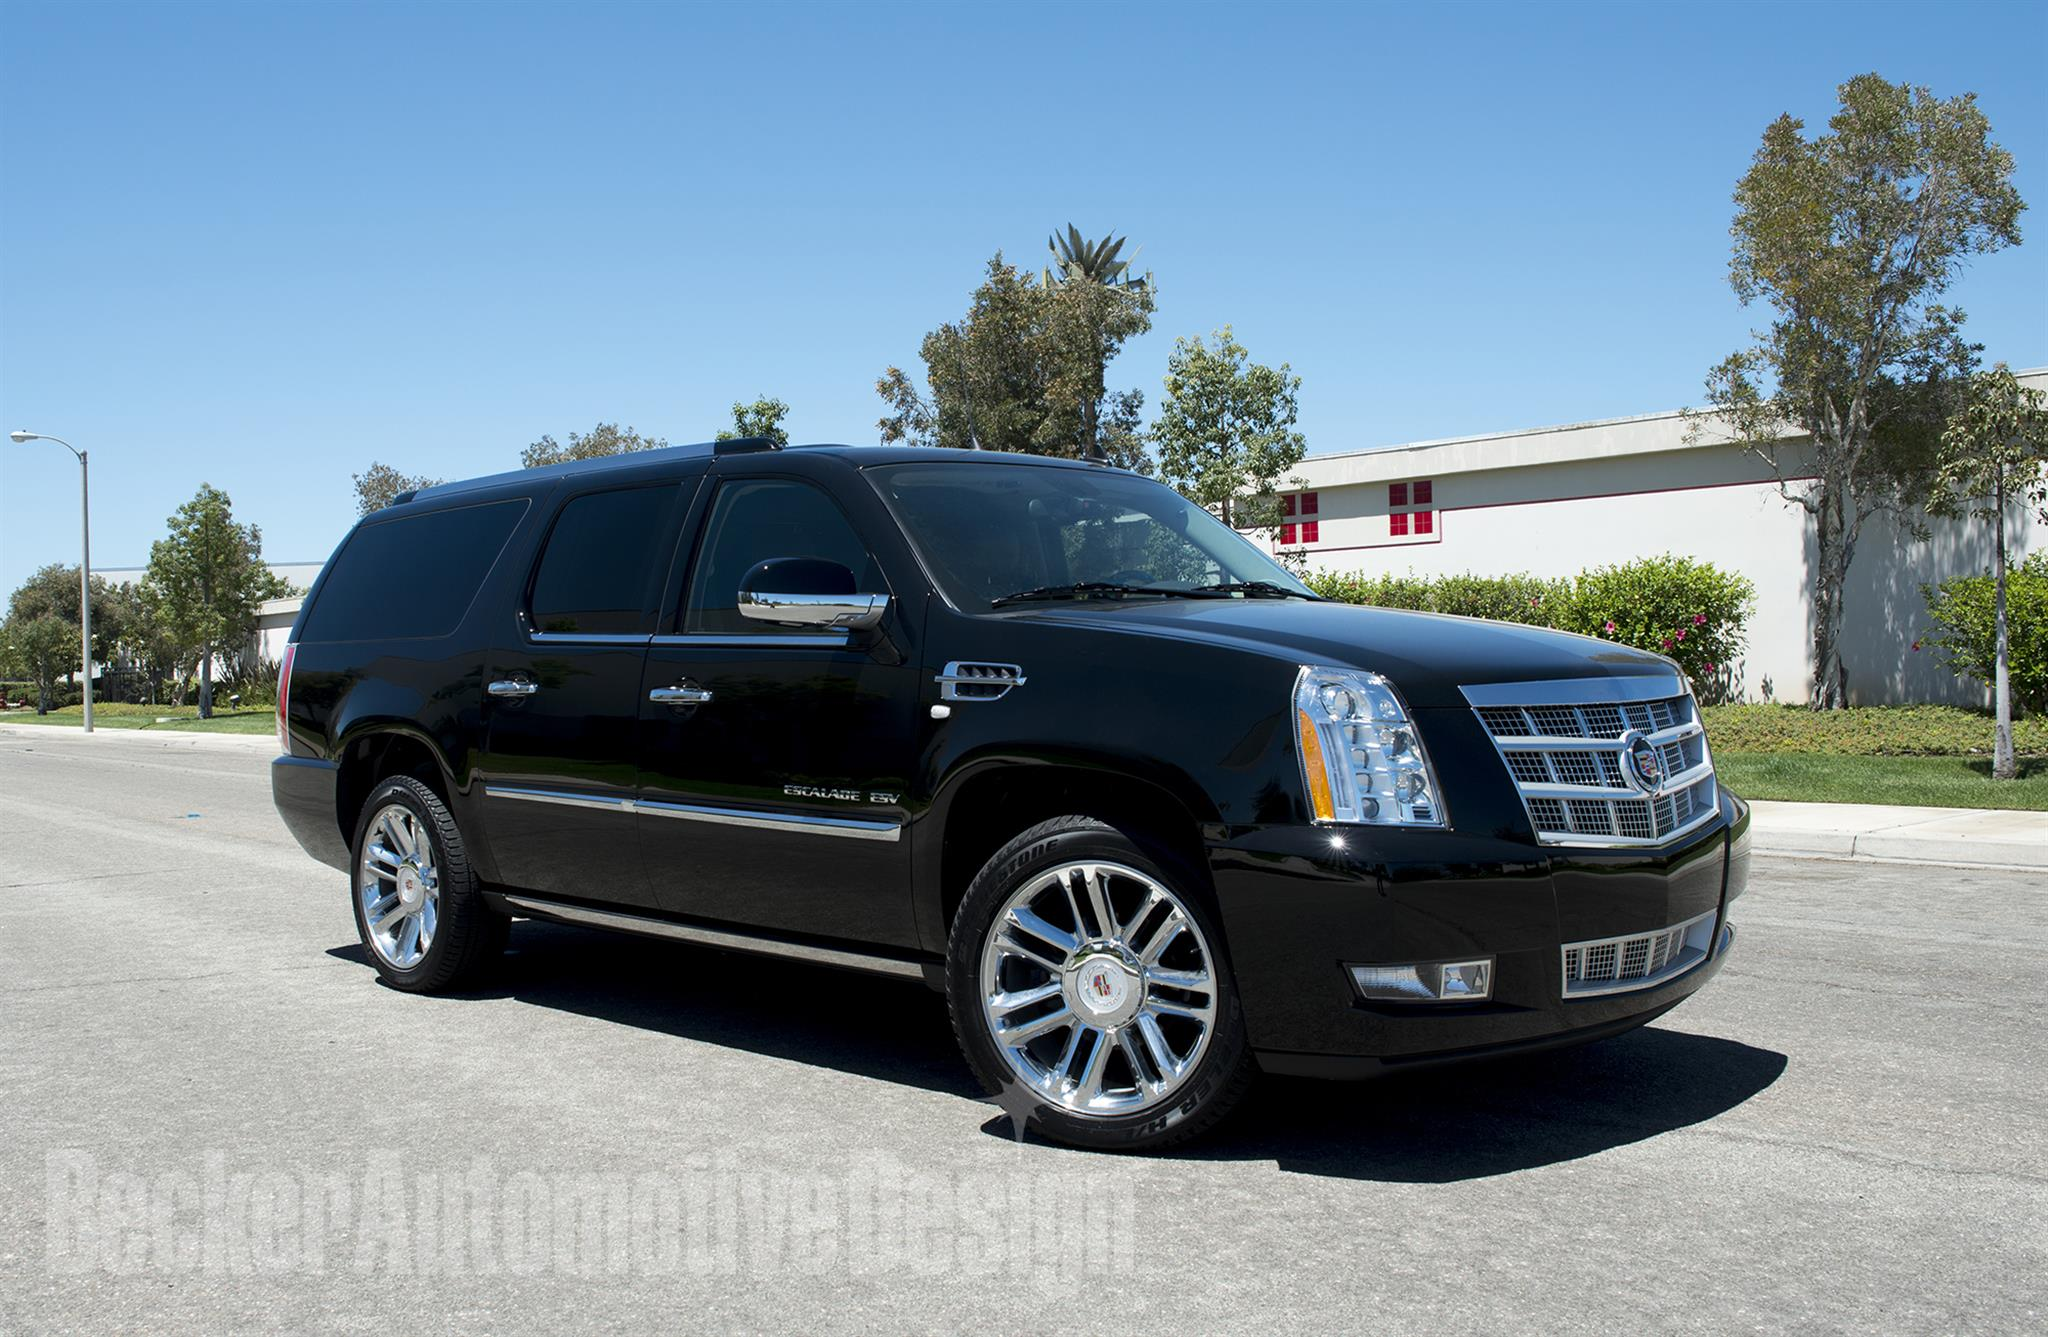 Cadillac - Escalade ESV -  - Wheels & Tires - Paint -  Wraps & Body - Lighting - Audio/Video - Interior - Performance